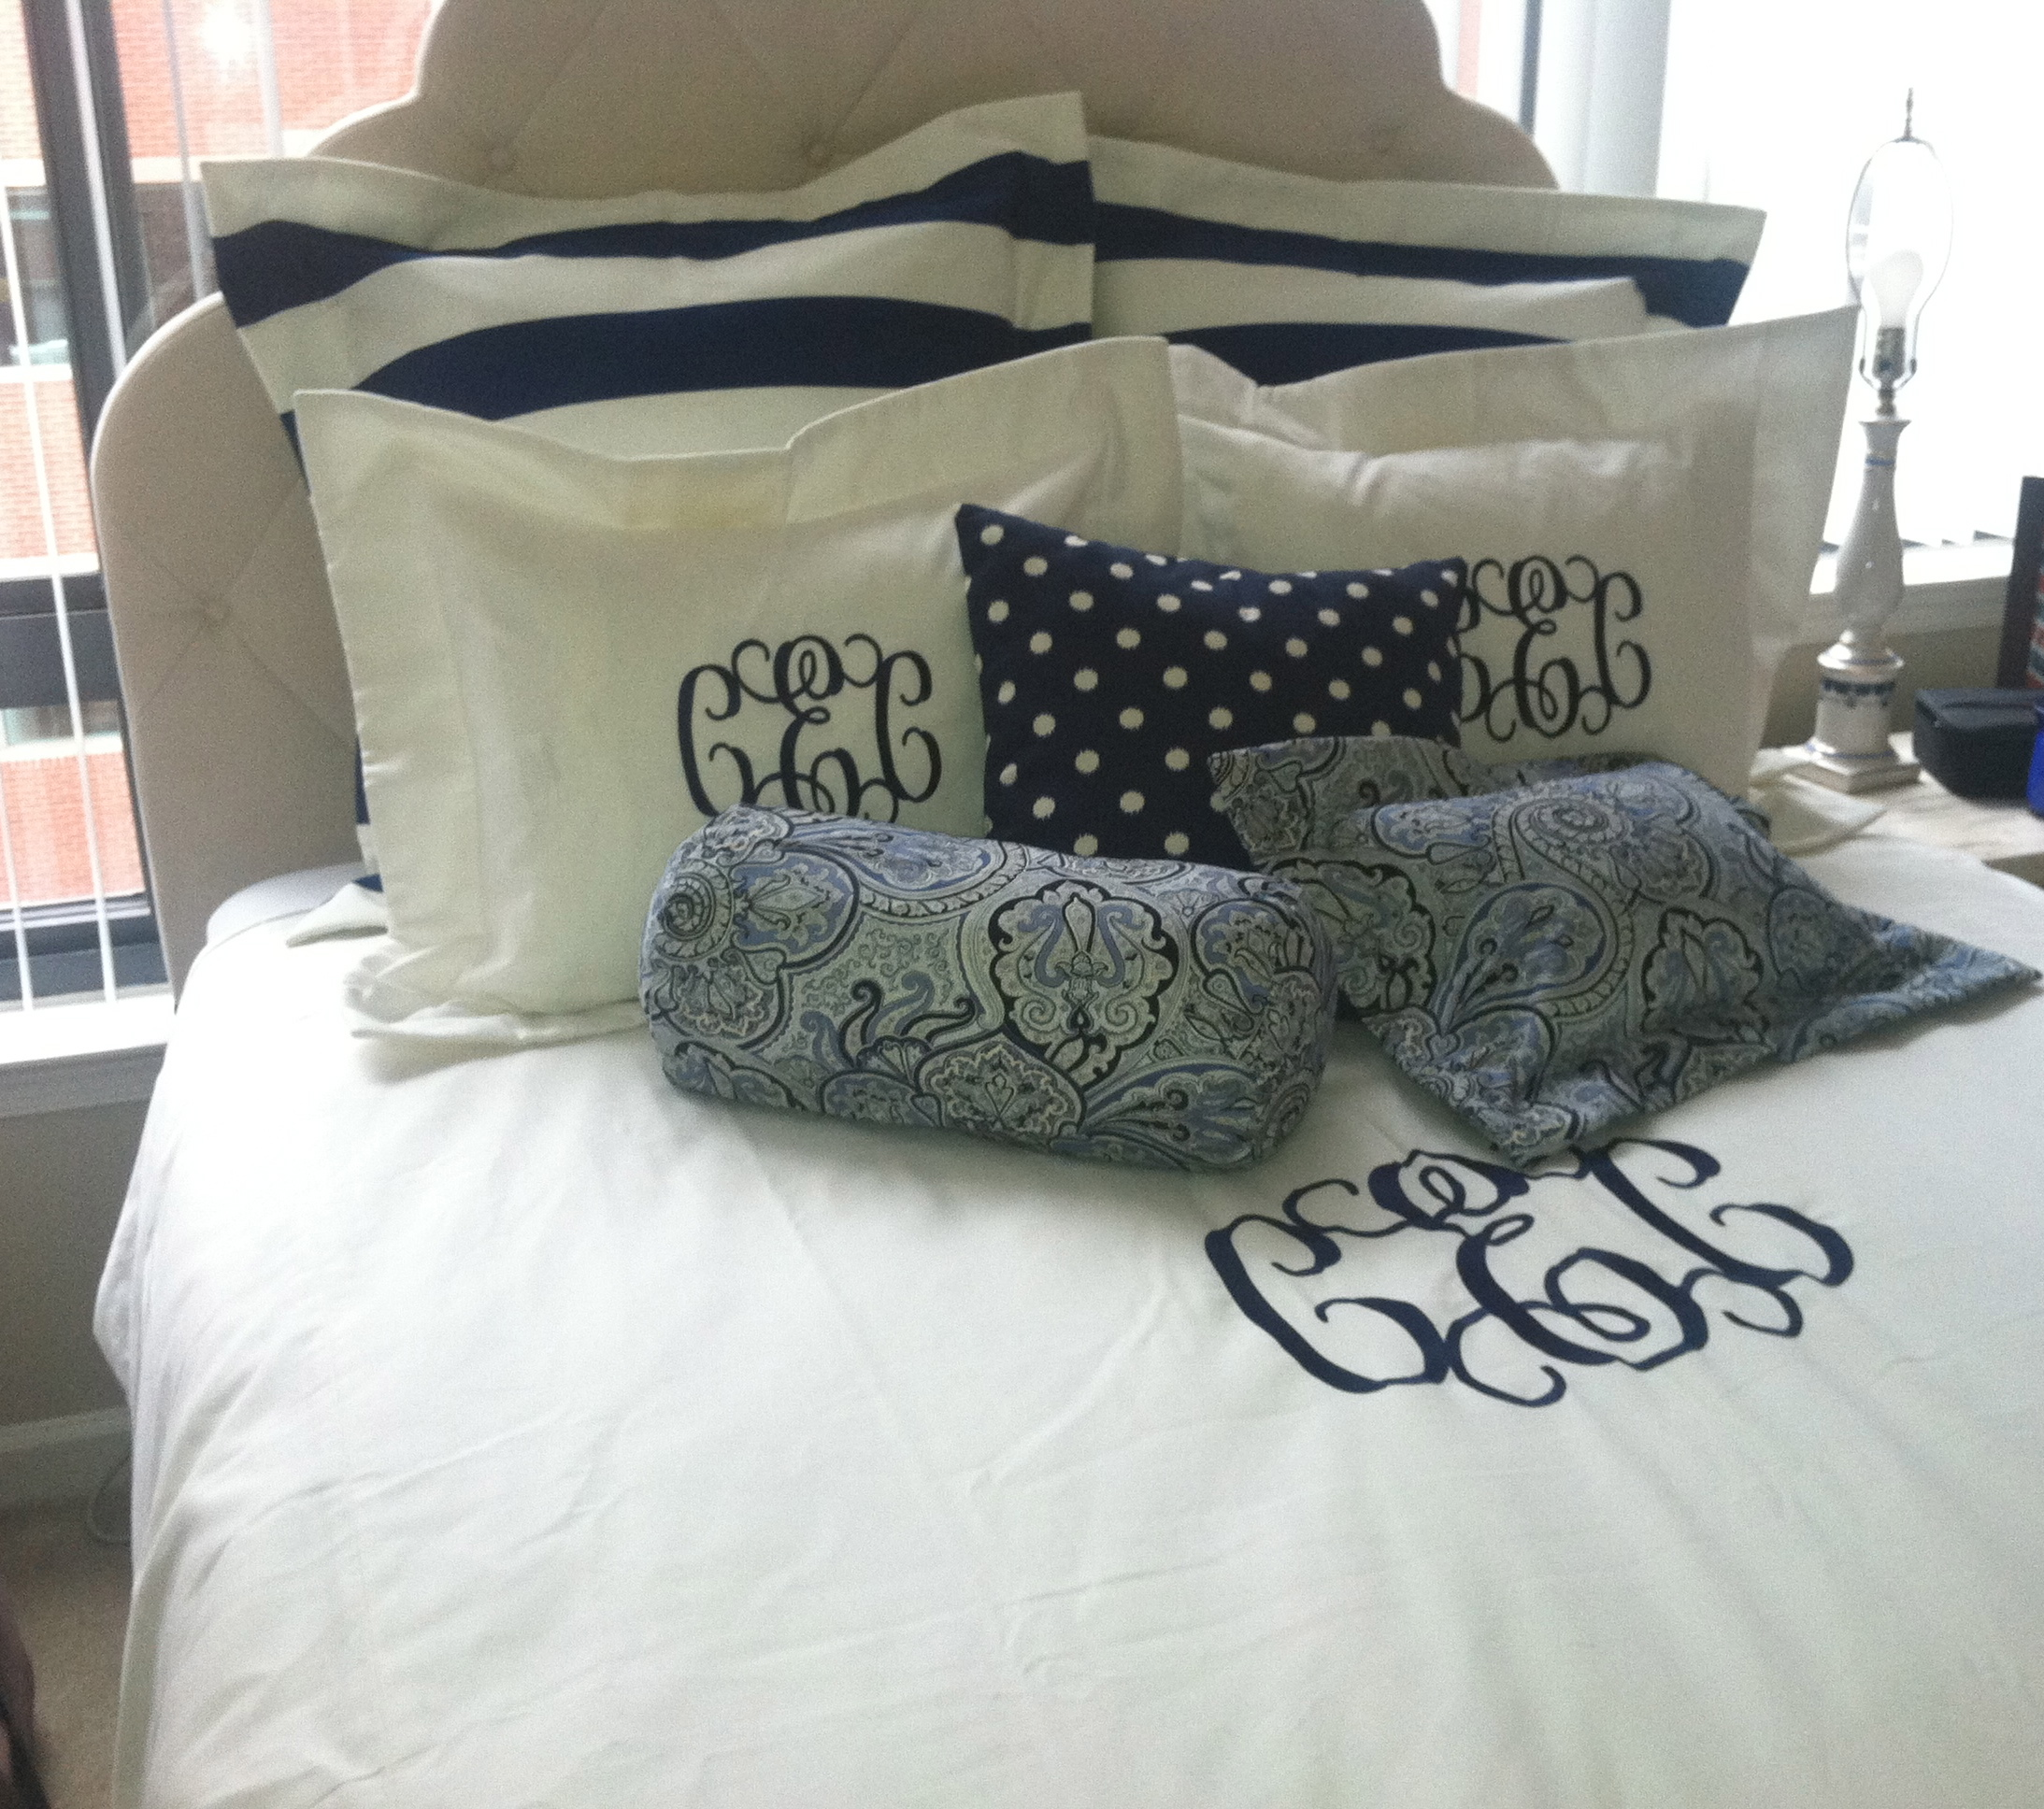 We Love Monogrammed Bedding